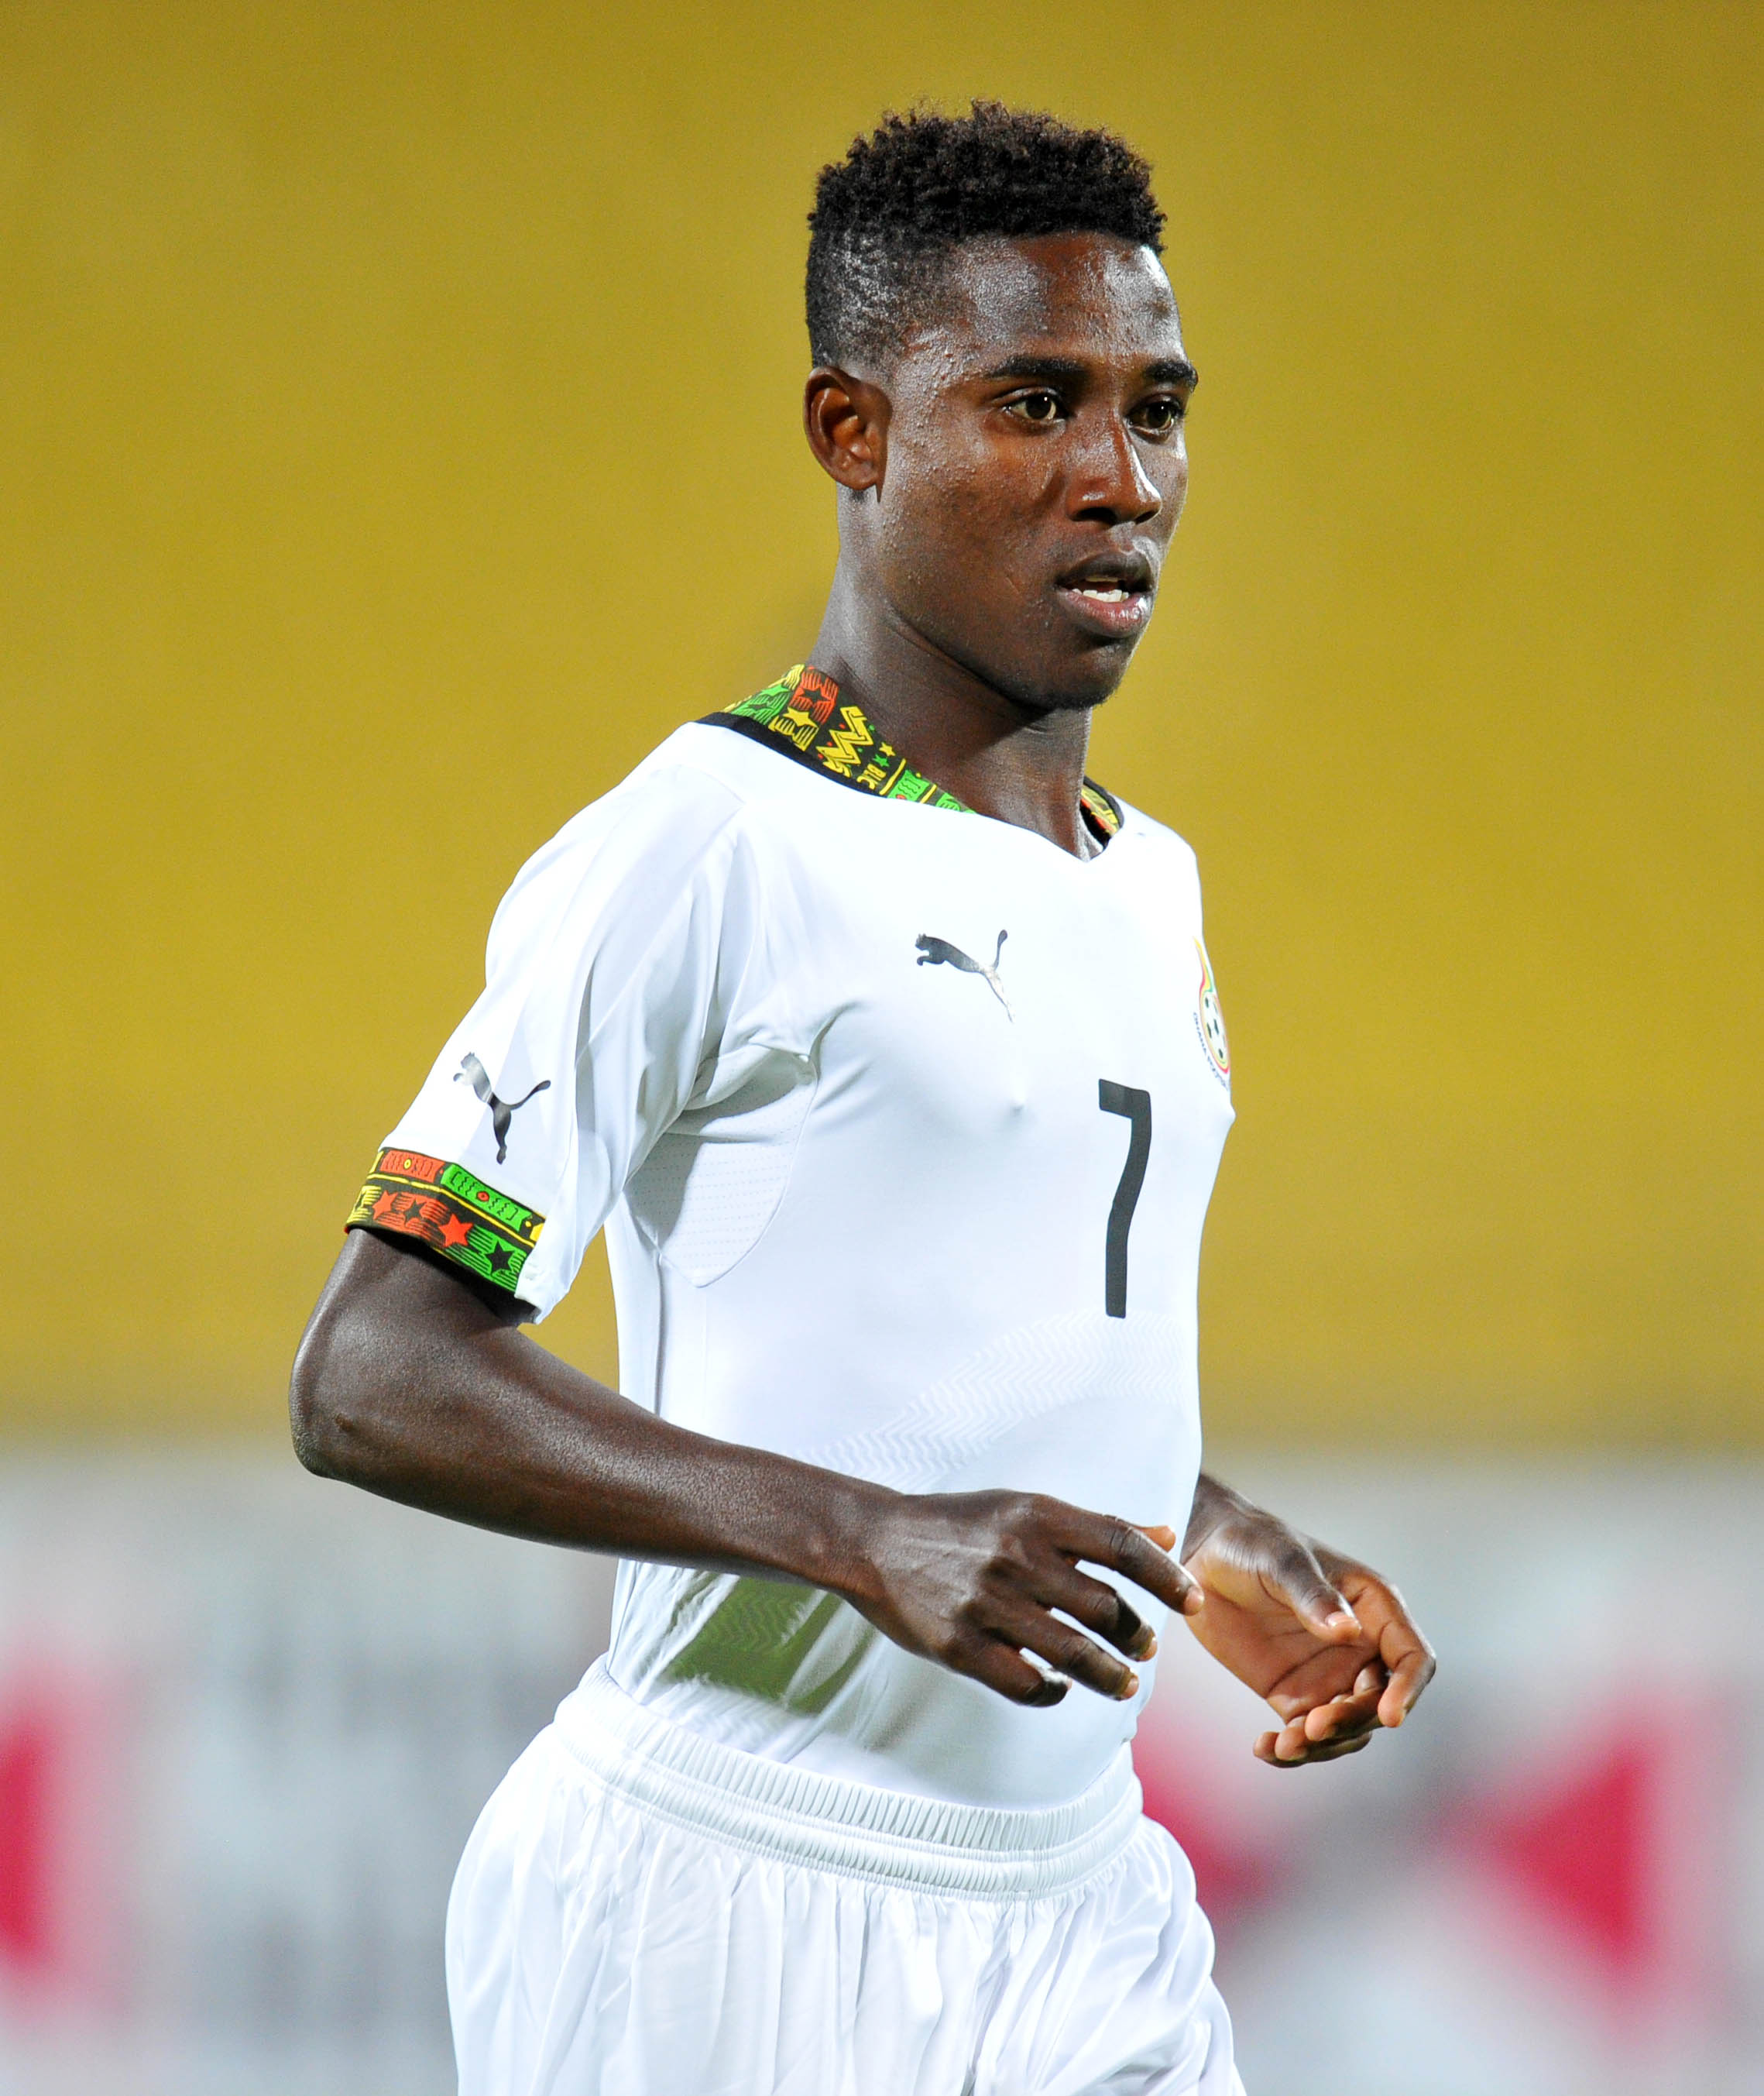 EXCLUSIVE: Inter Allies to sign Heart of Lions duo Kwame Baah and Isaac Twum